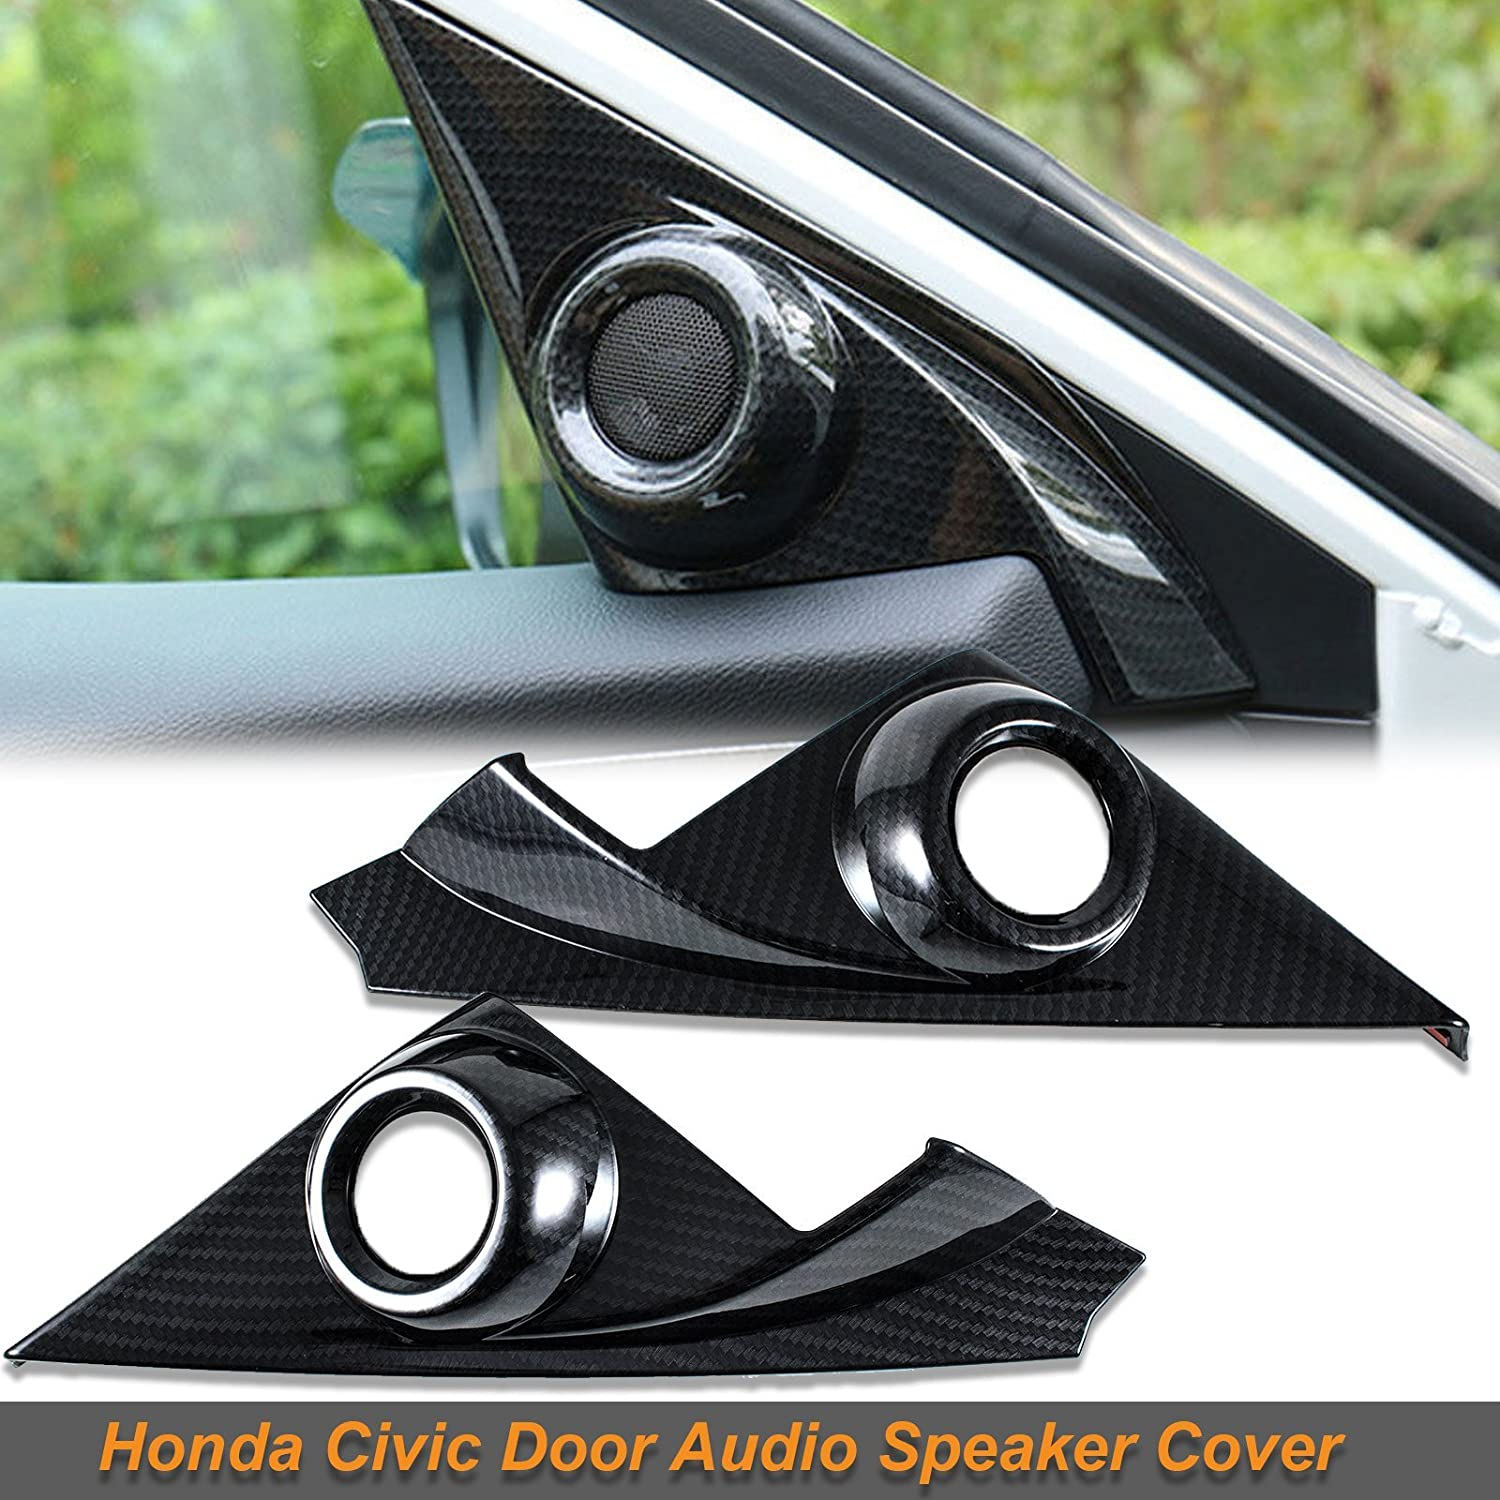 Xotic Tech Carbon Fiber Pattern Door Audio Speaker Covers for Honda Civic 10th 2016-19